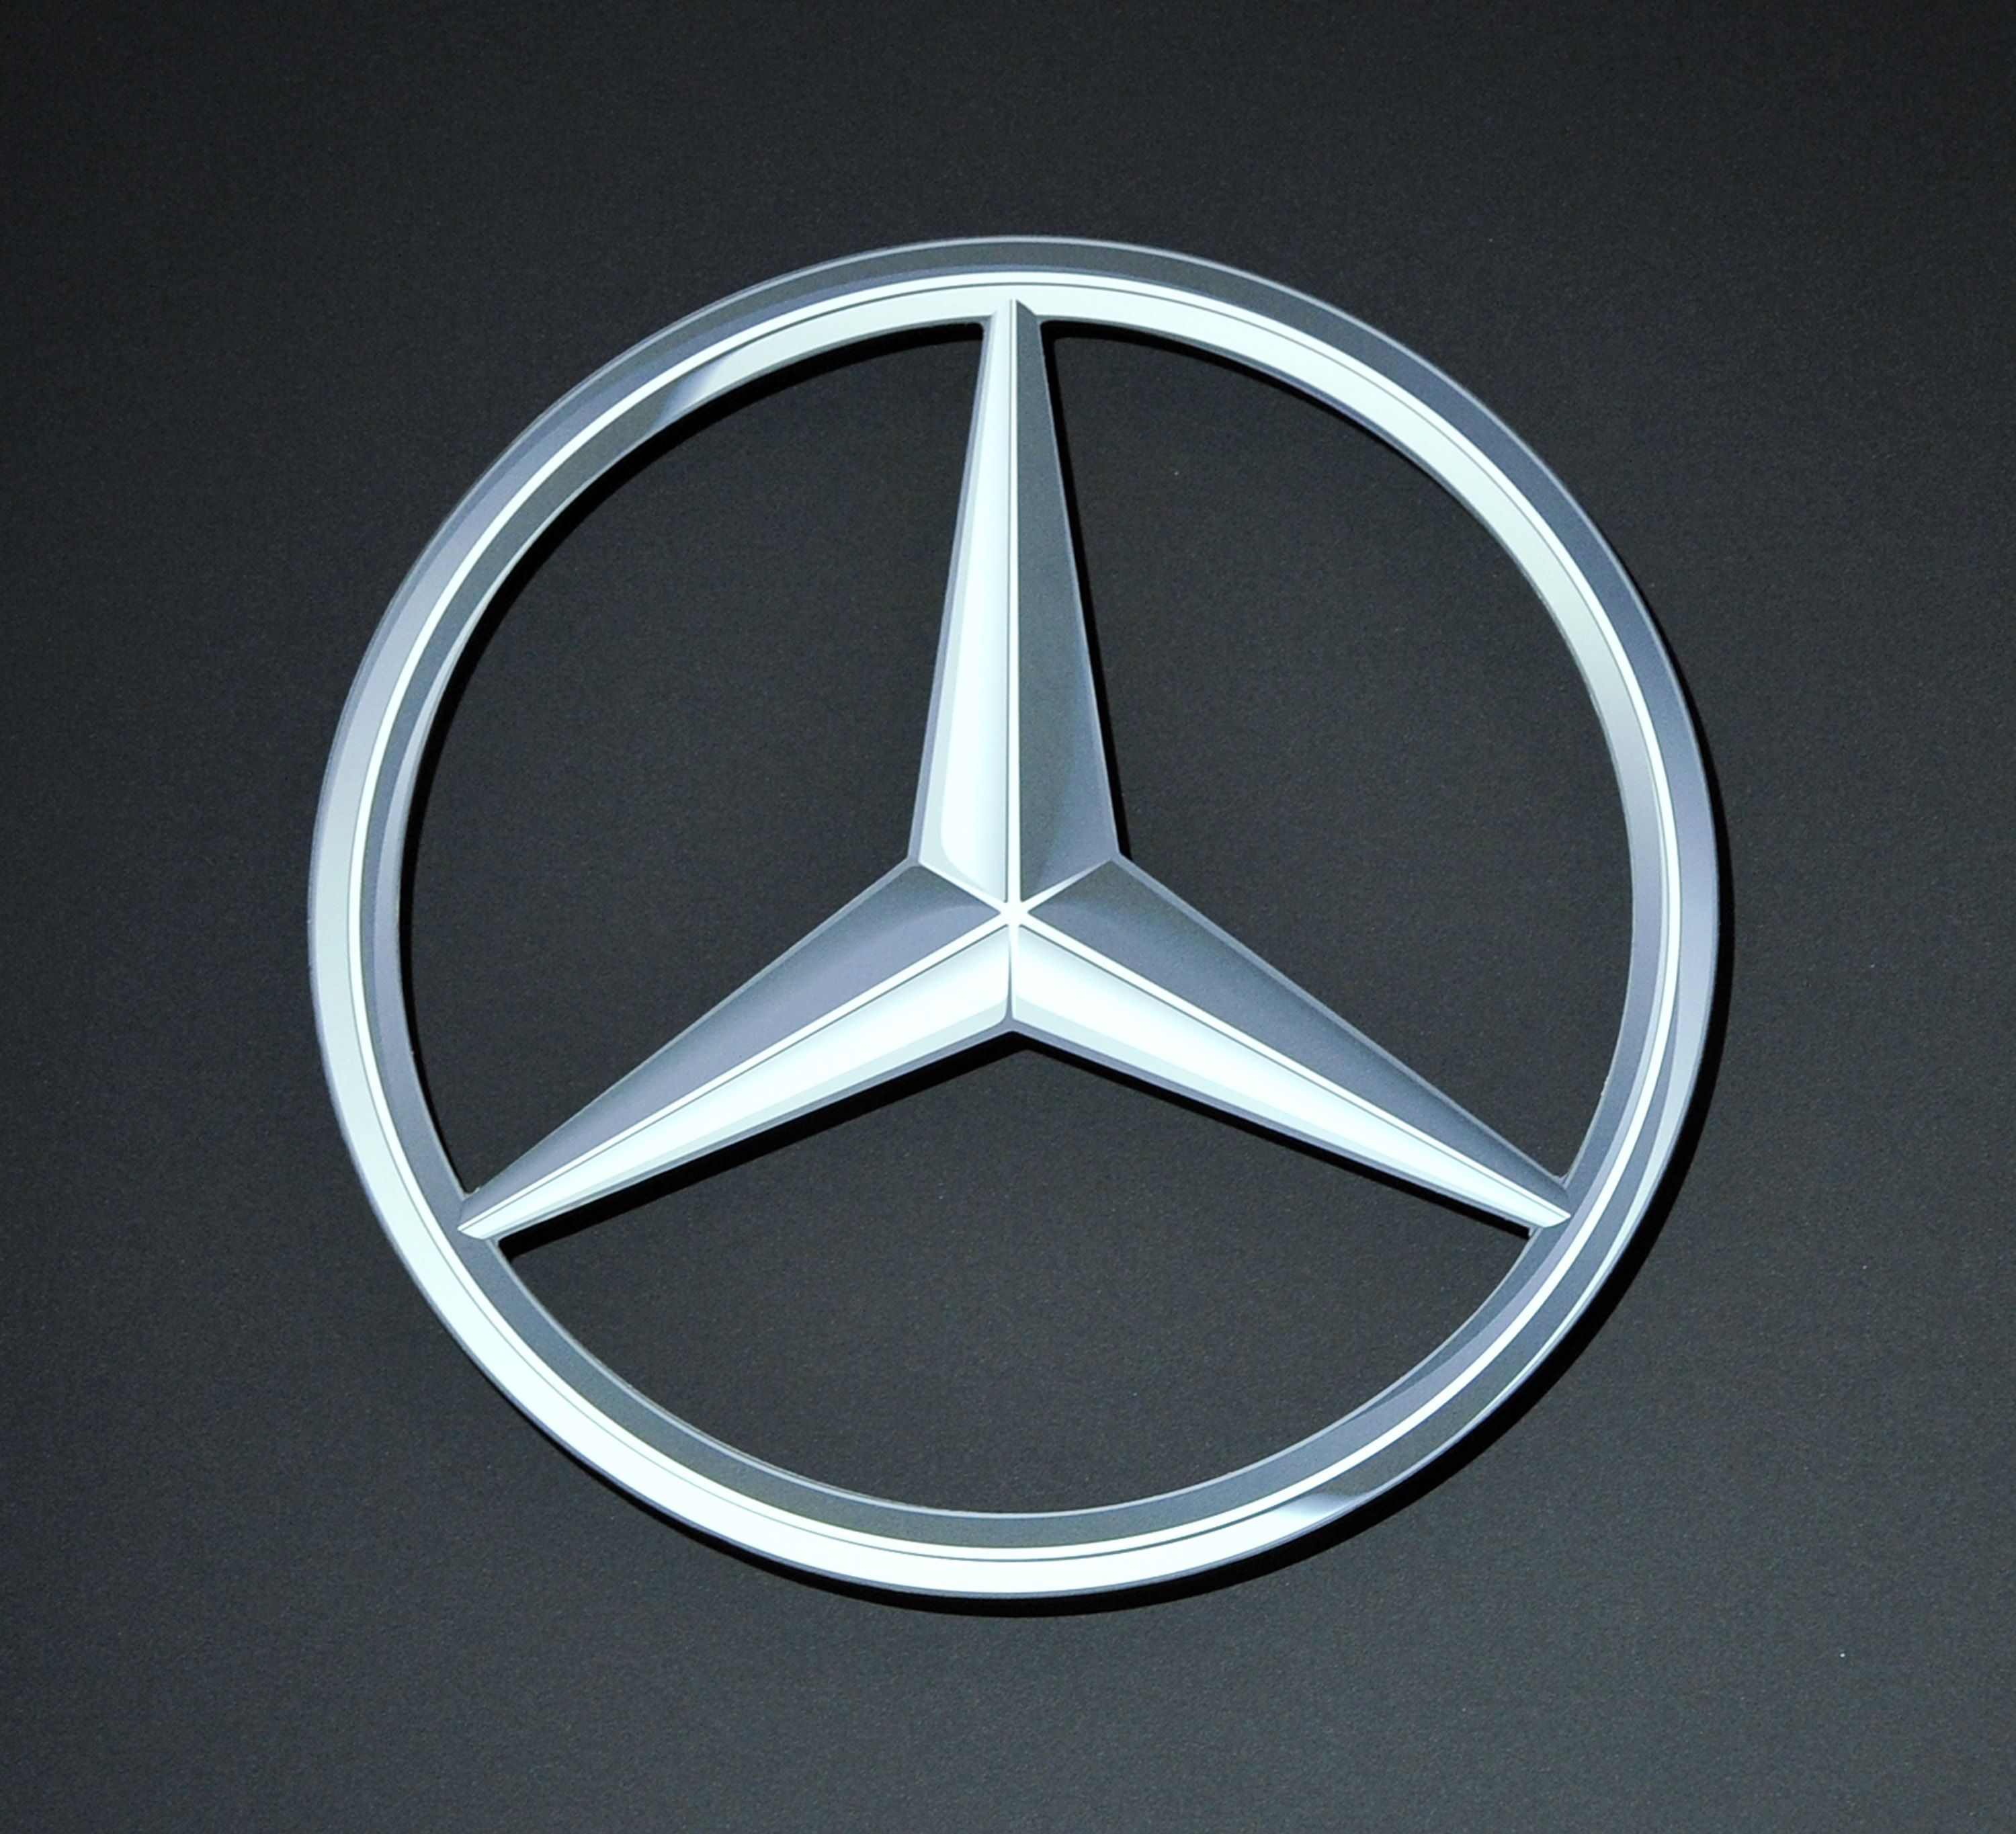 The Current Logo For Mercedes Benz Mercedes Classic Cars